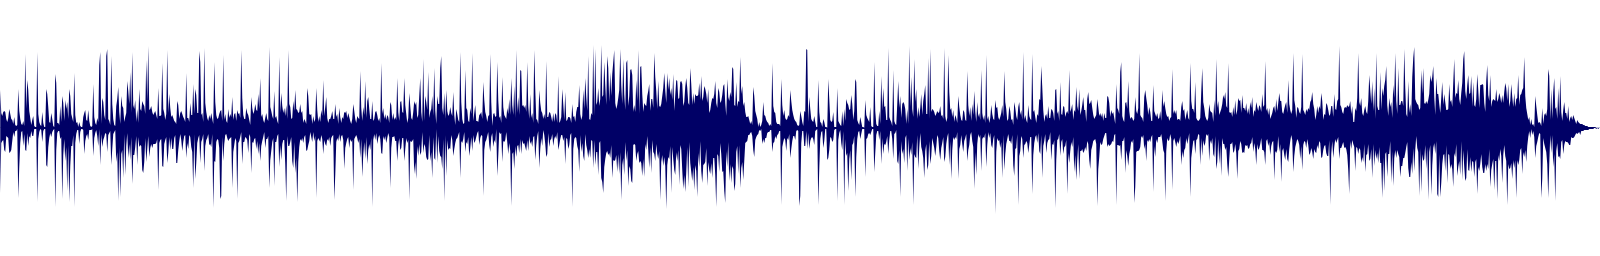 waveform of track #128717